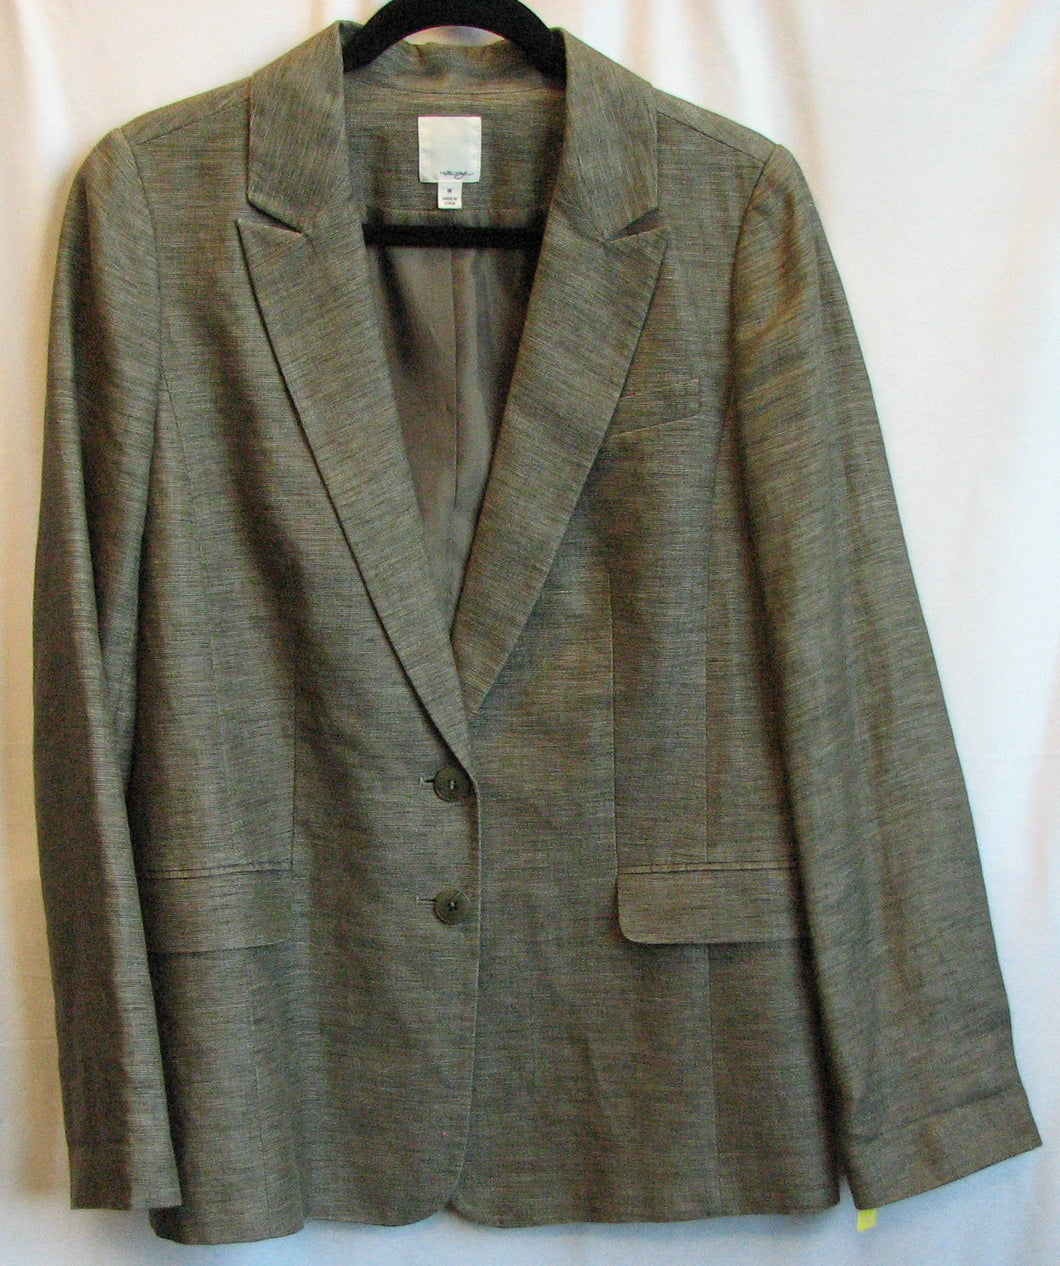 Women's Green Business Jacket - Size Medium